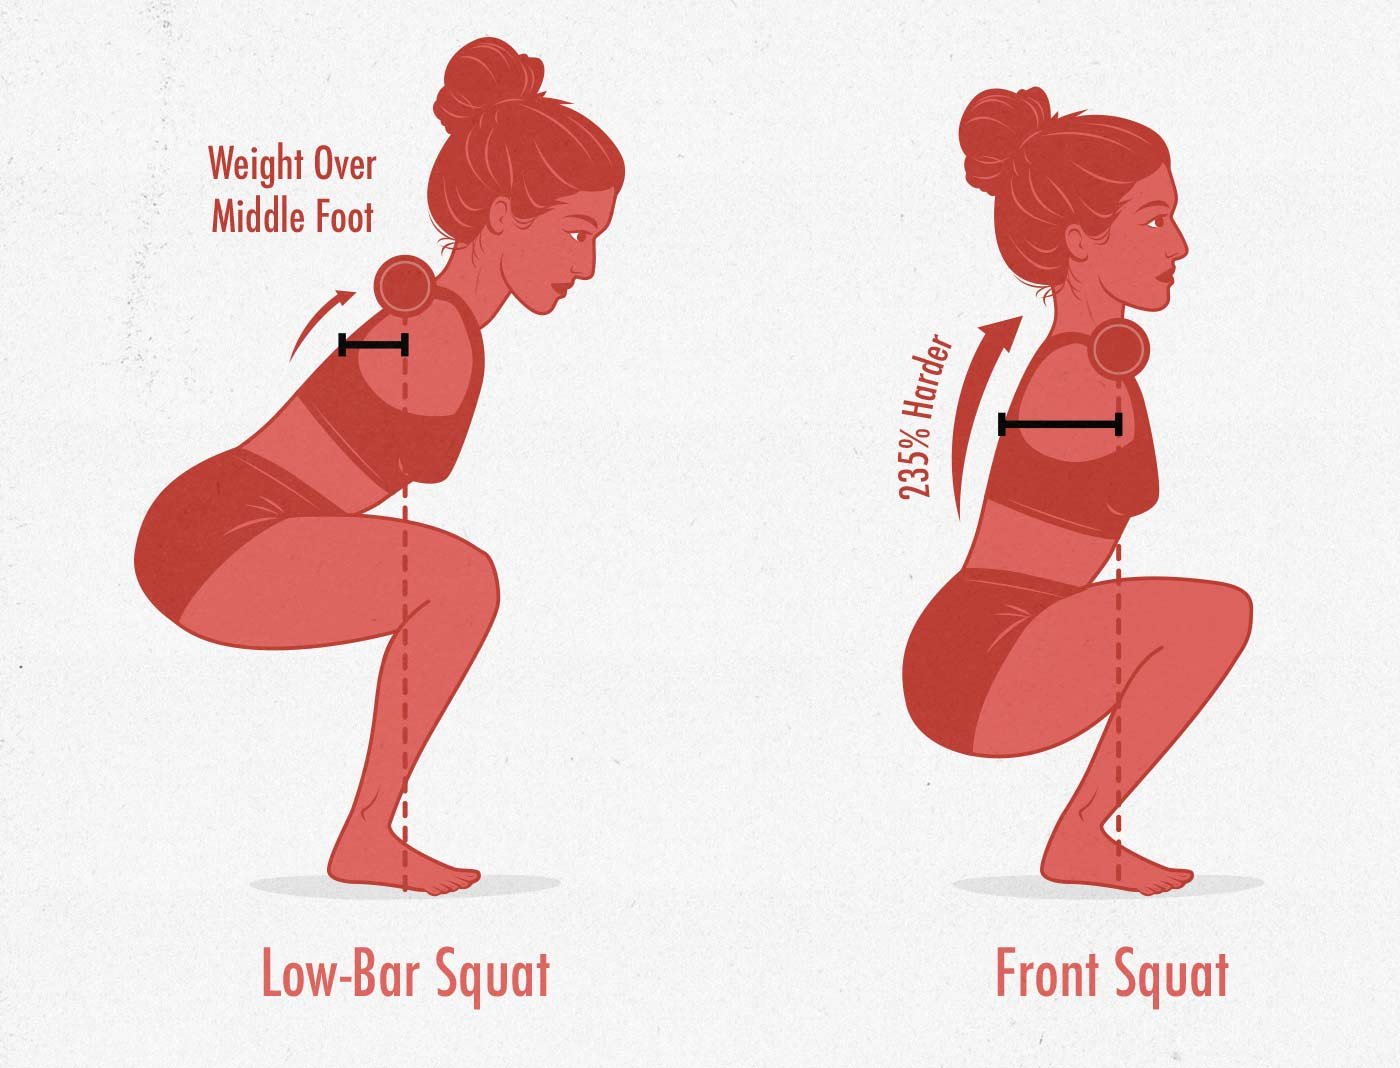 Diagram of the upper back demands of the low-bar back squat and the front squat.